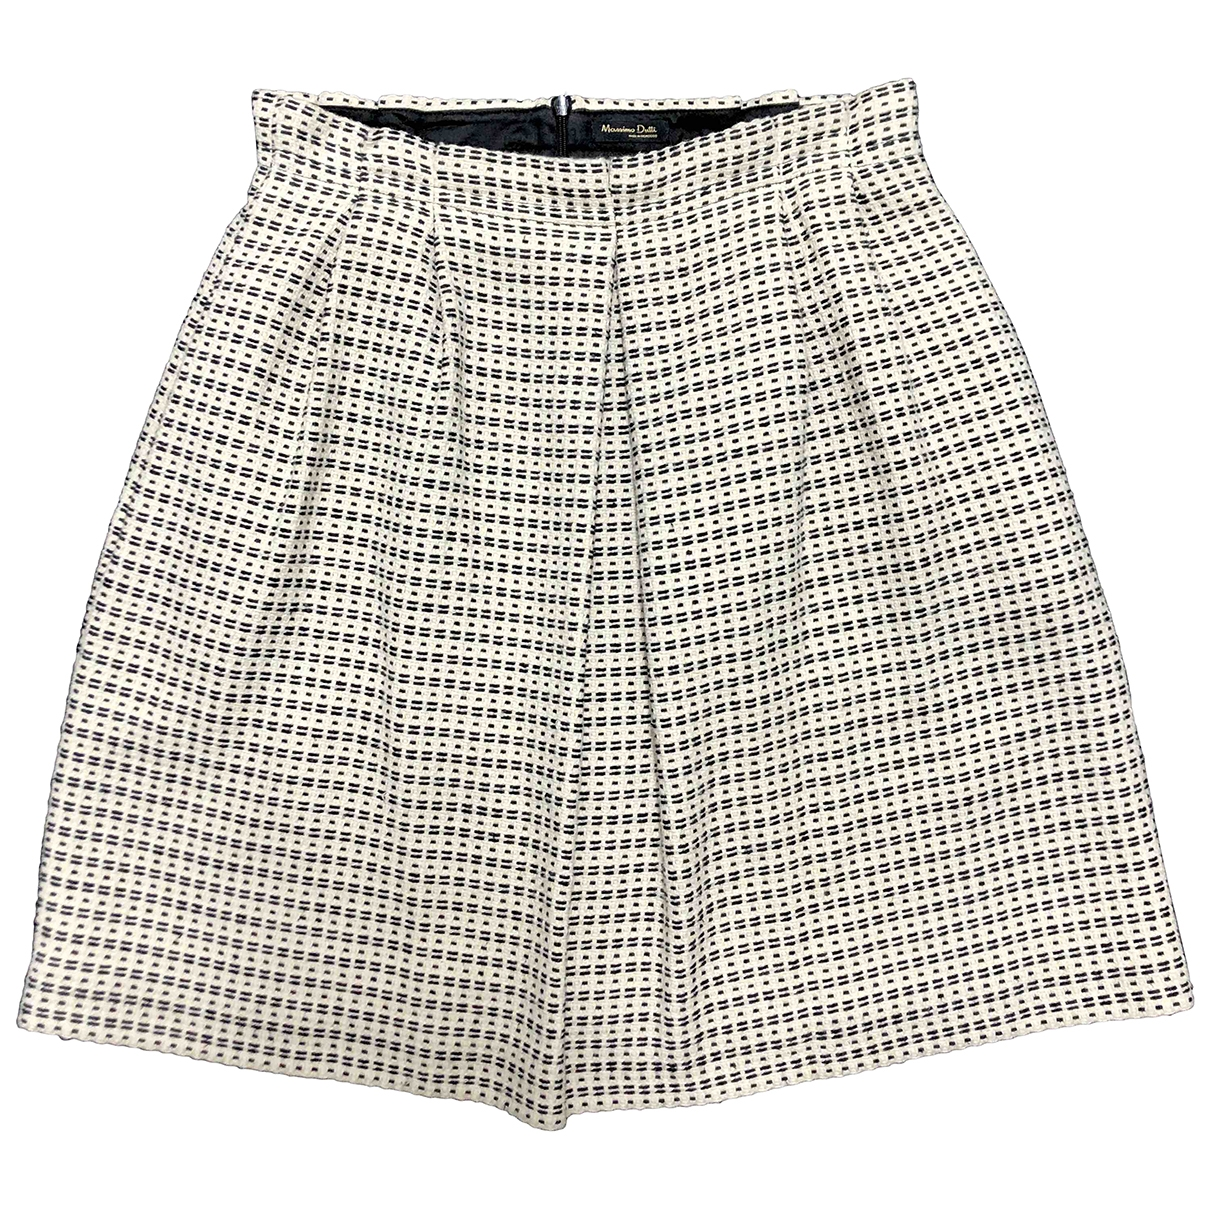 Massimo Dutti \N Multicolour Cotton skirt for Women L International